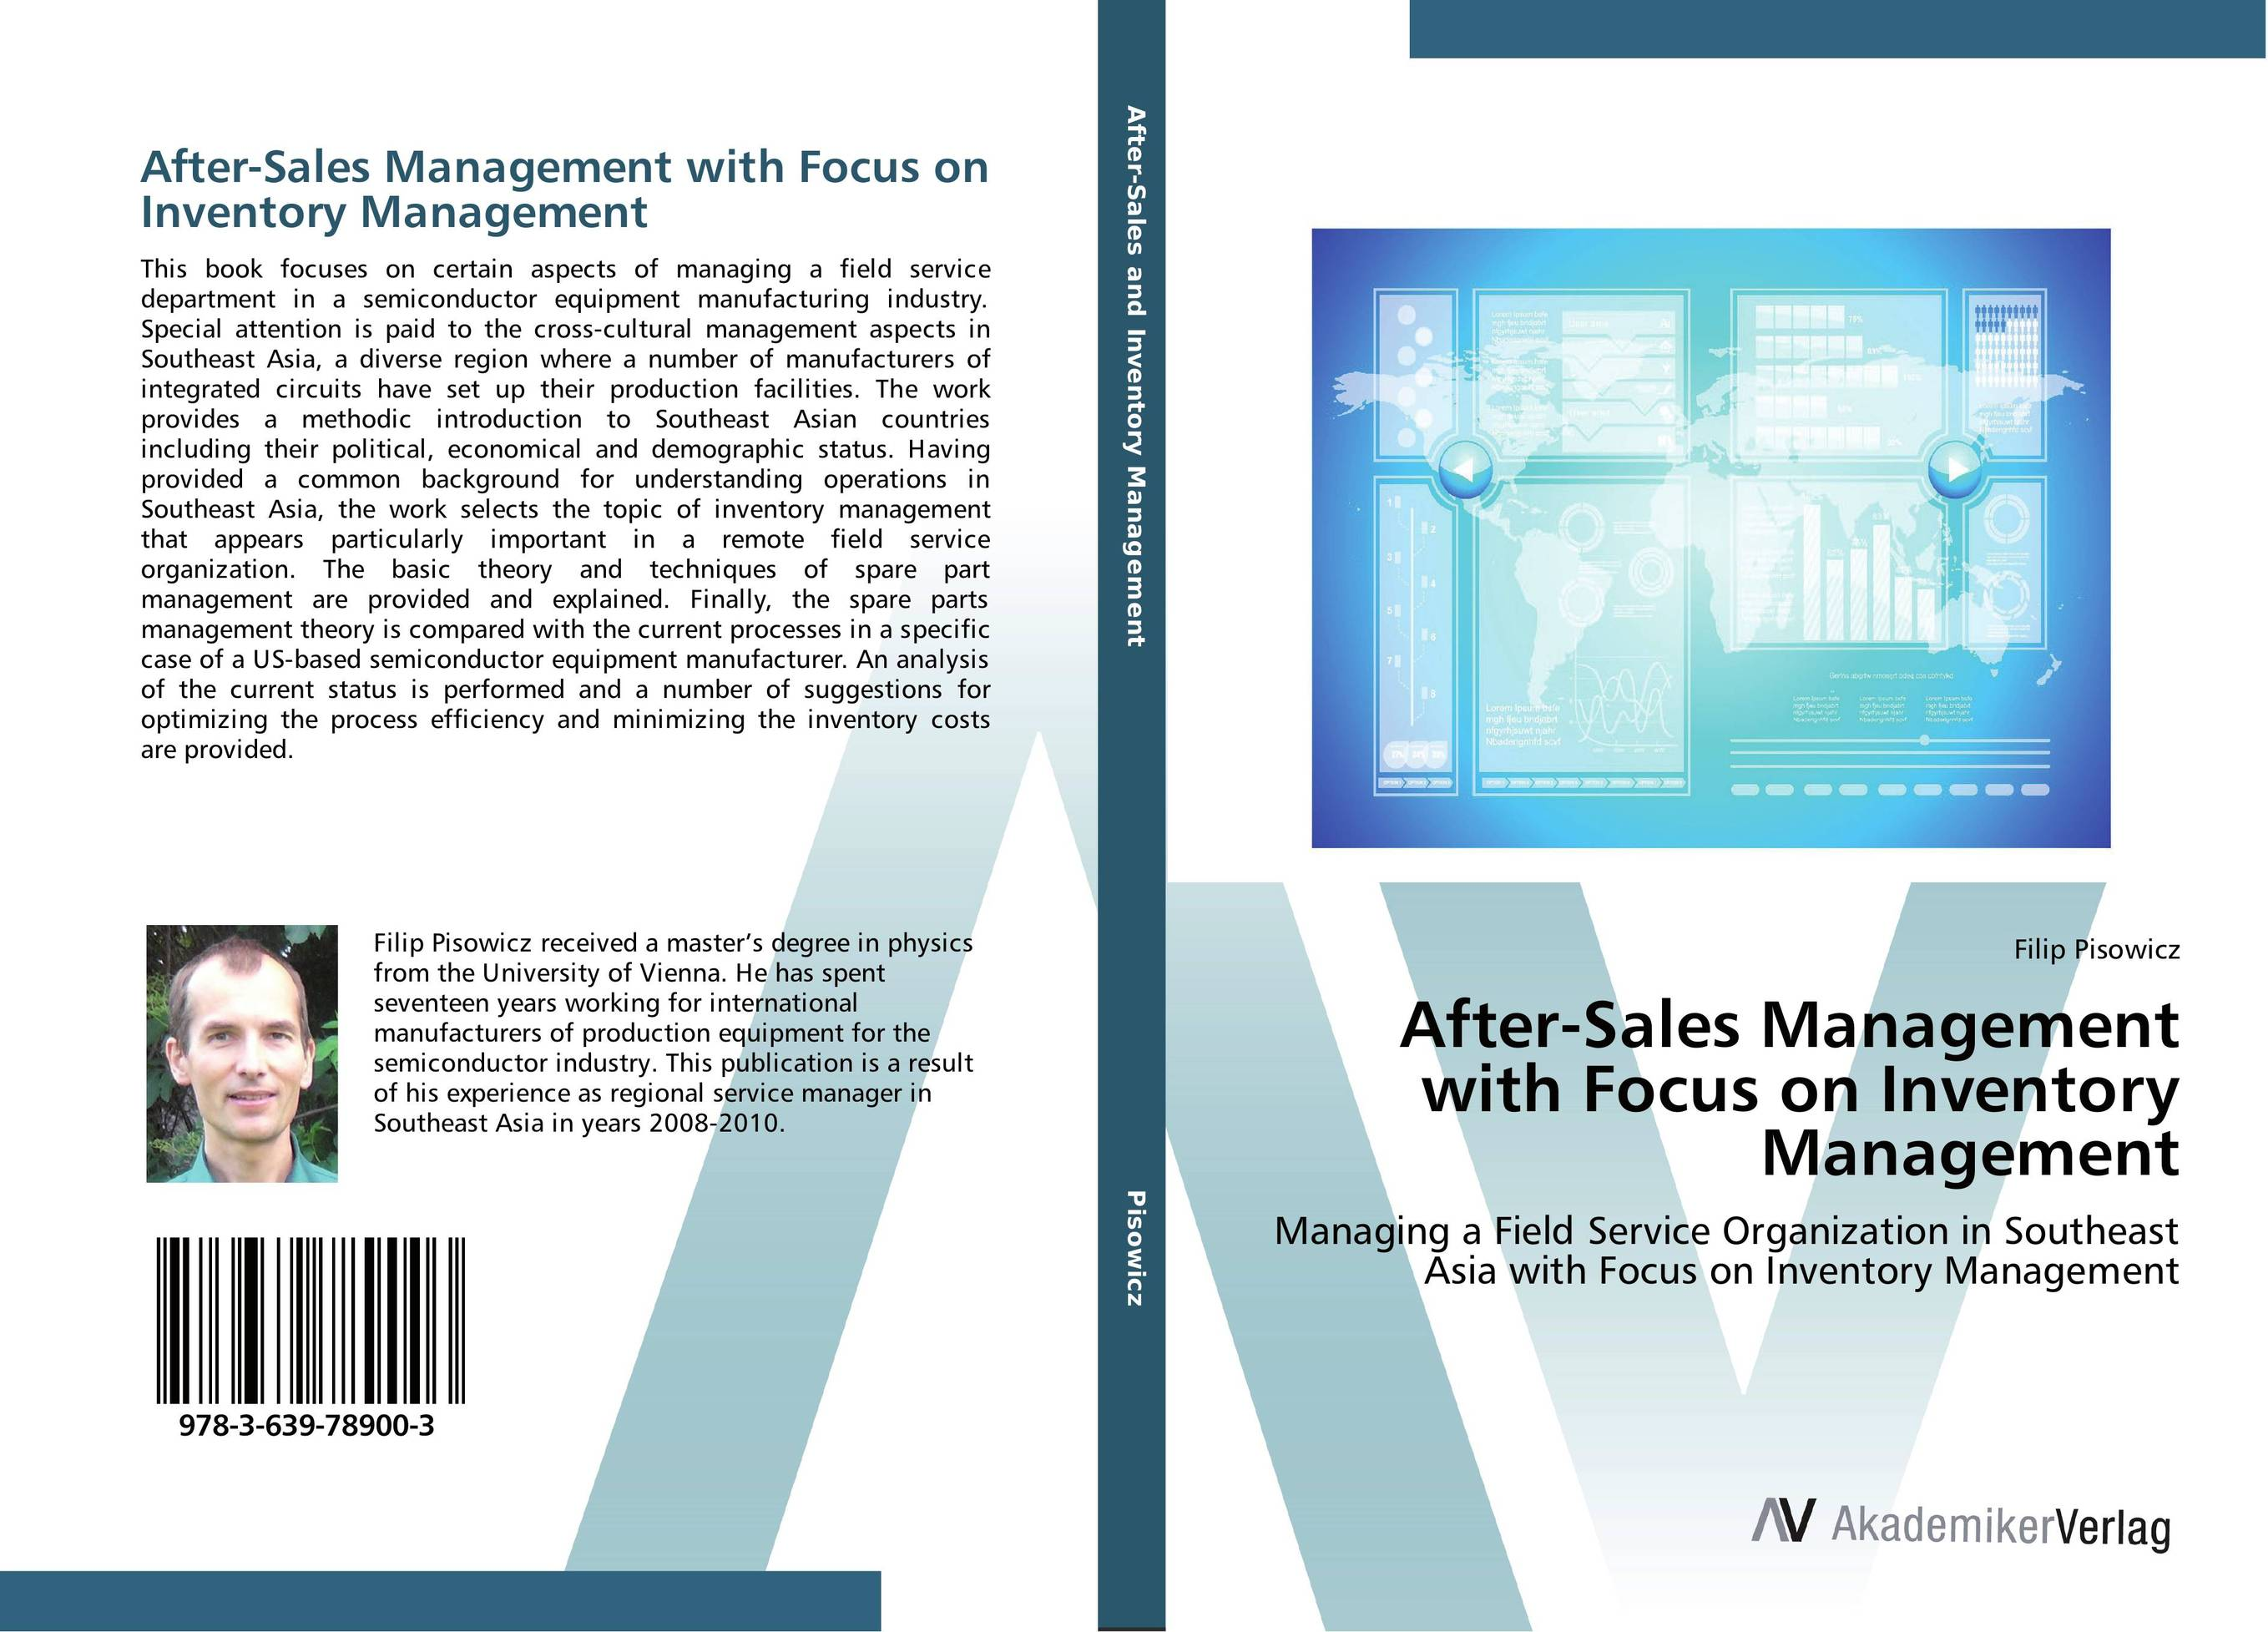 After-Sales Management with Focus on Inventory Management